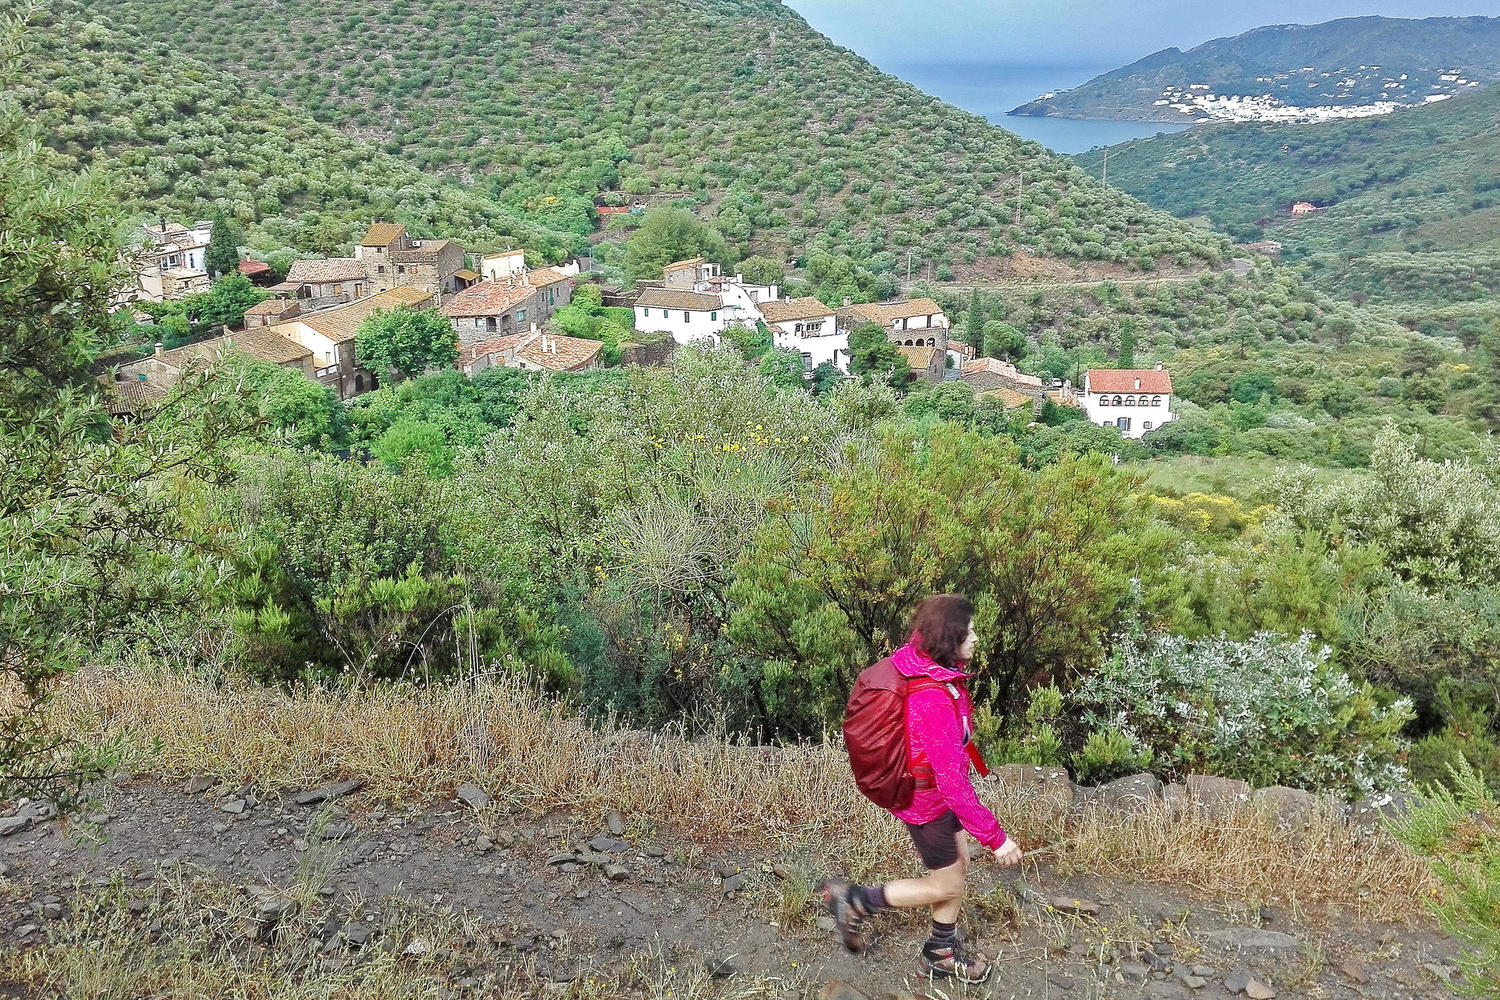 Walking down towards the sea from Sant Pere de Rodes